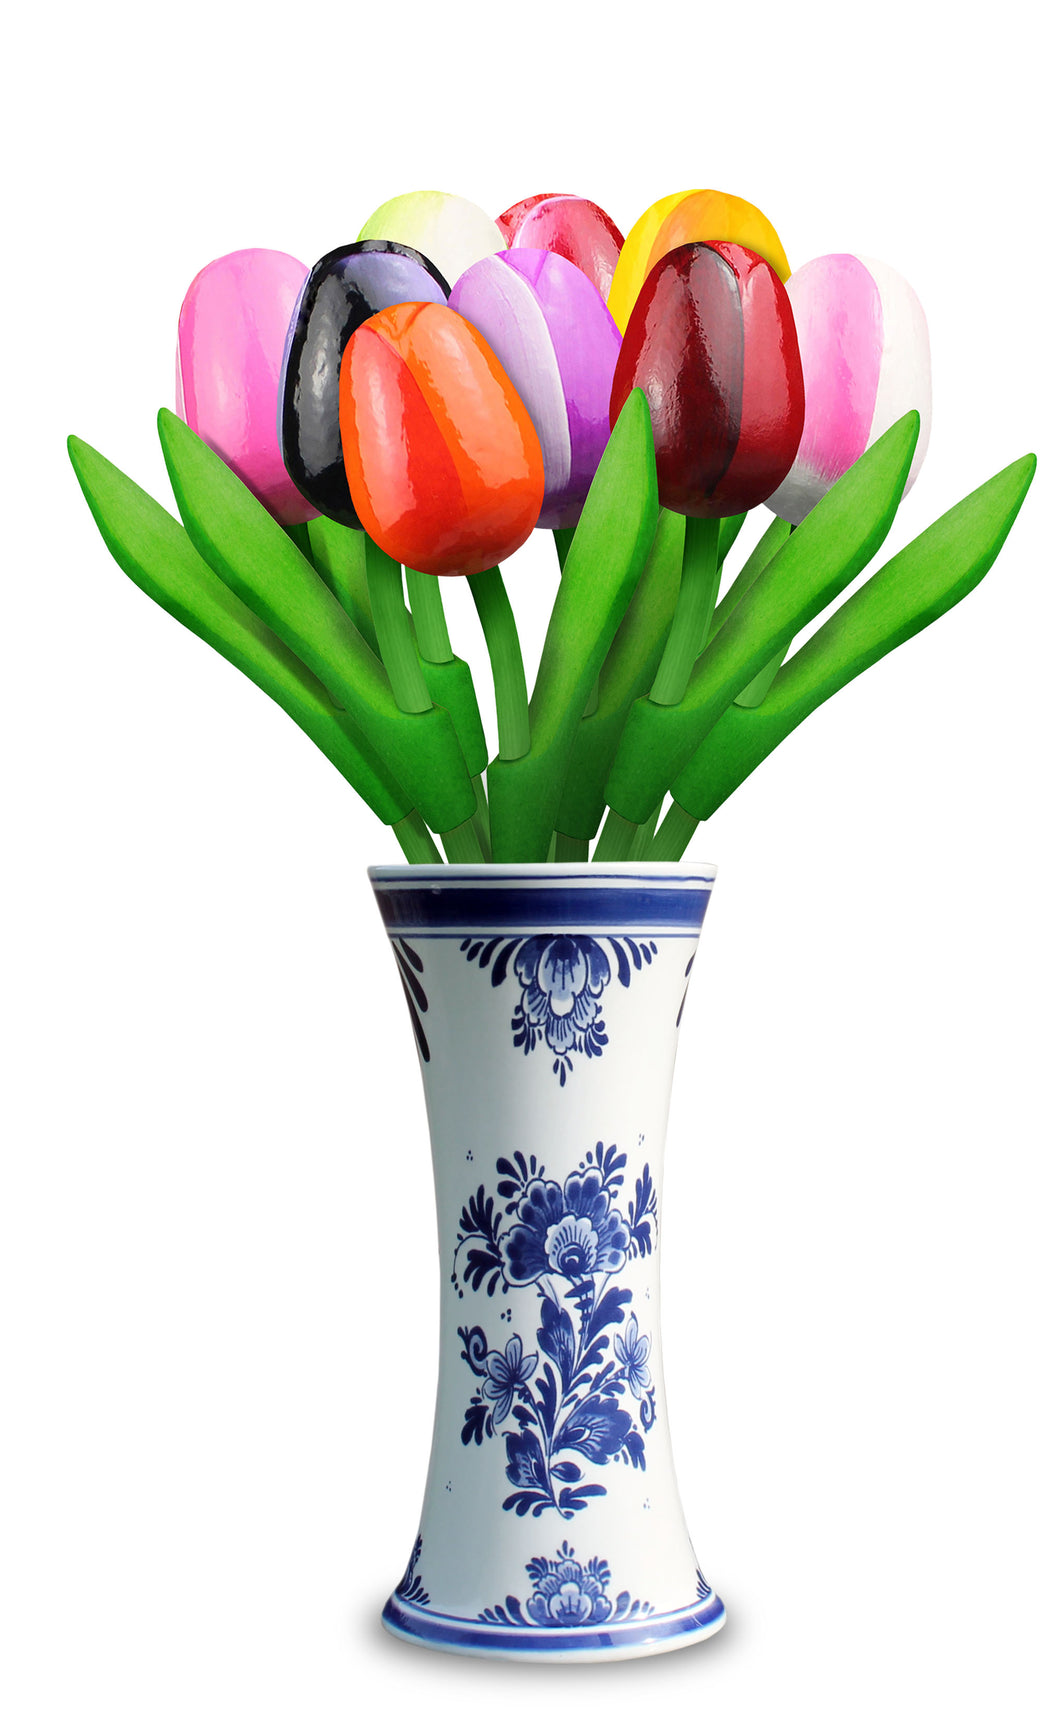 Delft Blue Tulip Vase with 9 Small Wooden Tulips